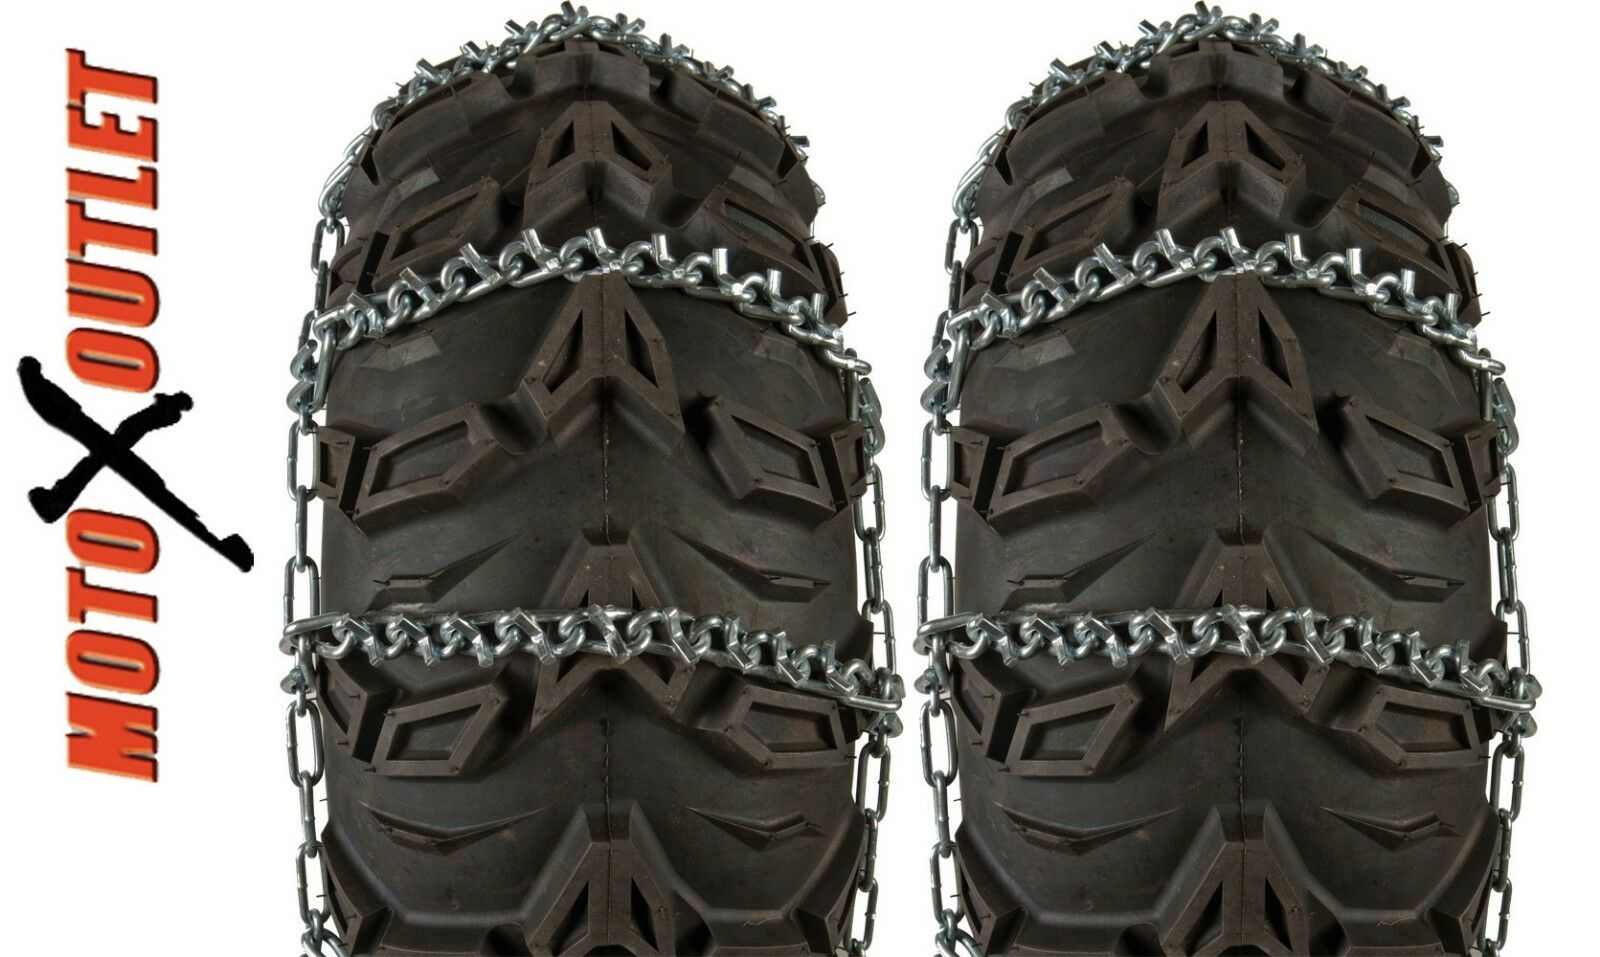 SIZE B ATV TIRE SNOW ICE CHAINS 9 V BAR 25X8-12 25X8X12 25 8 12 FRONT TIRES